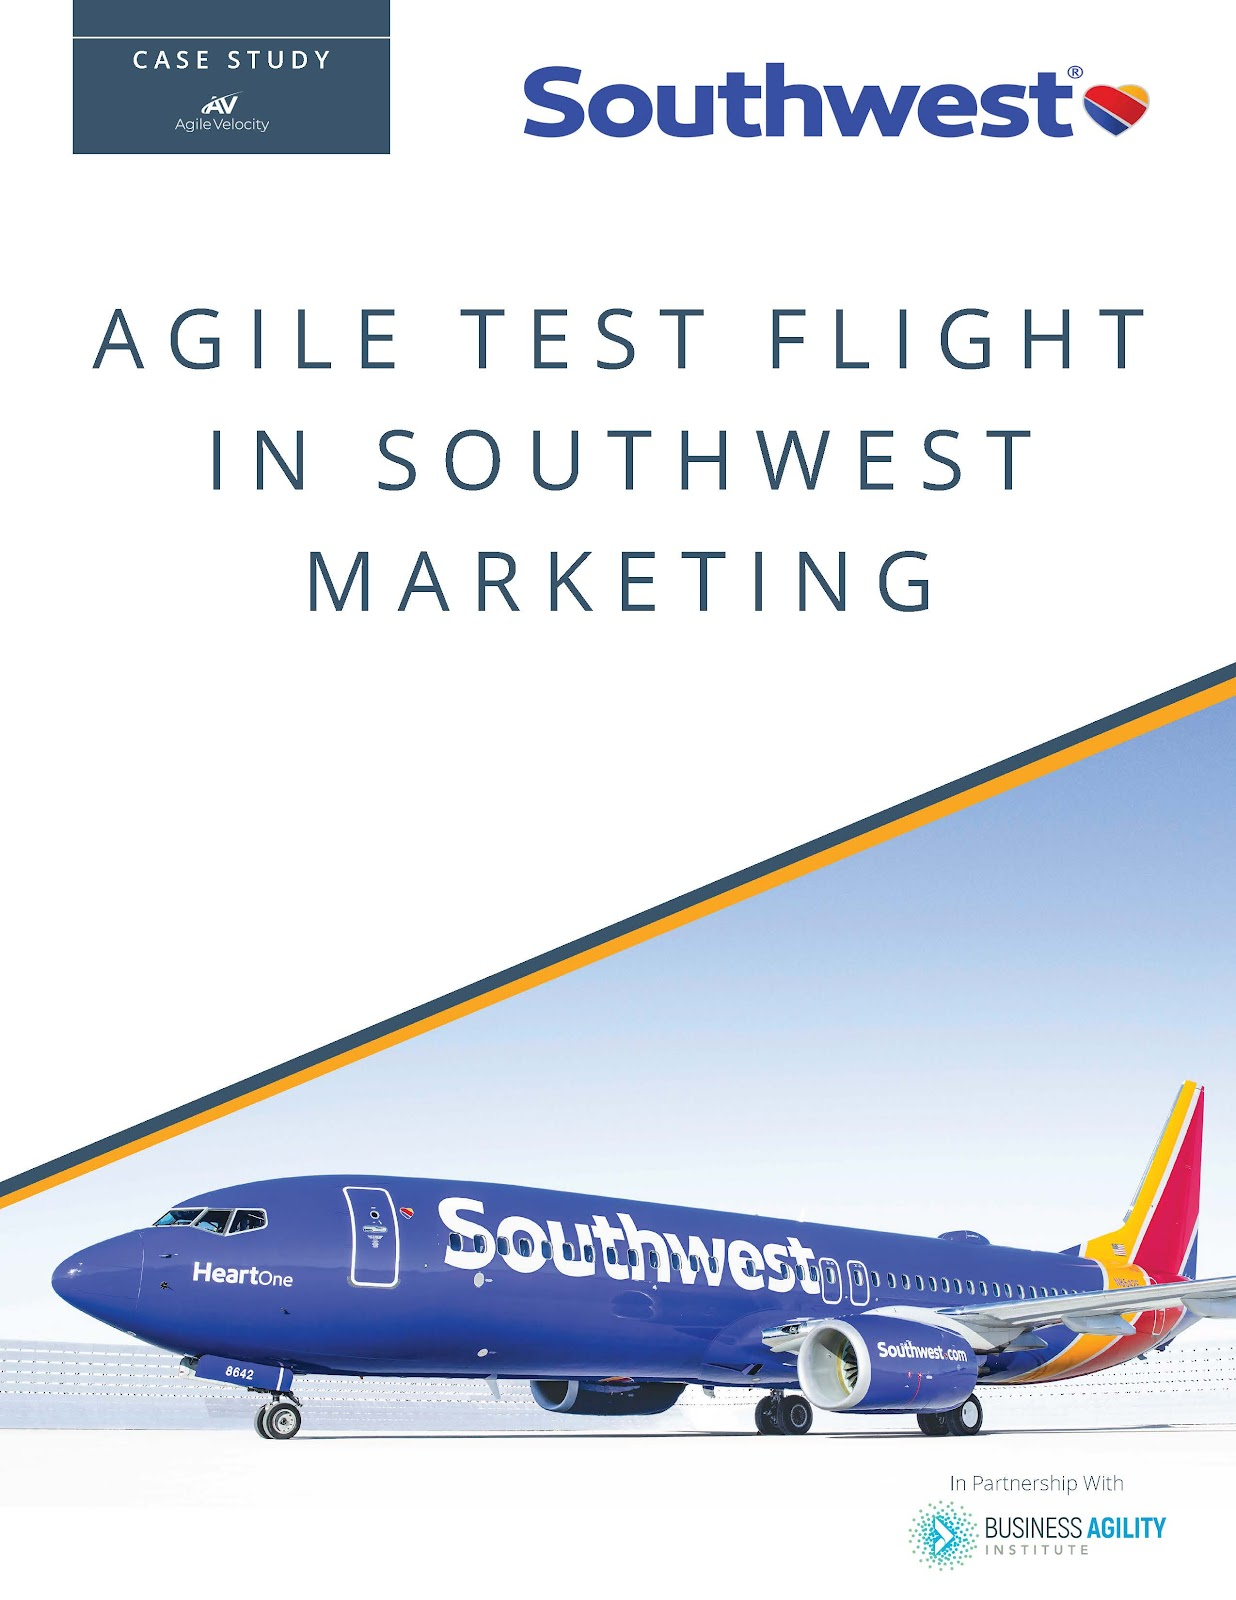 Southwest Airlines' Marketing Agile case study cover.